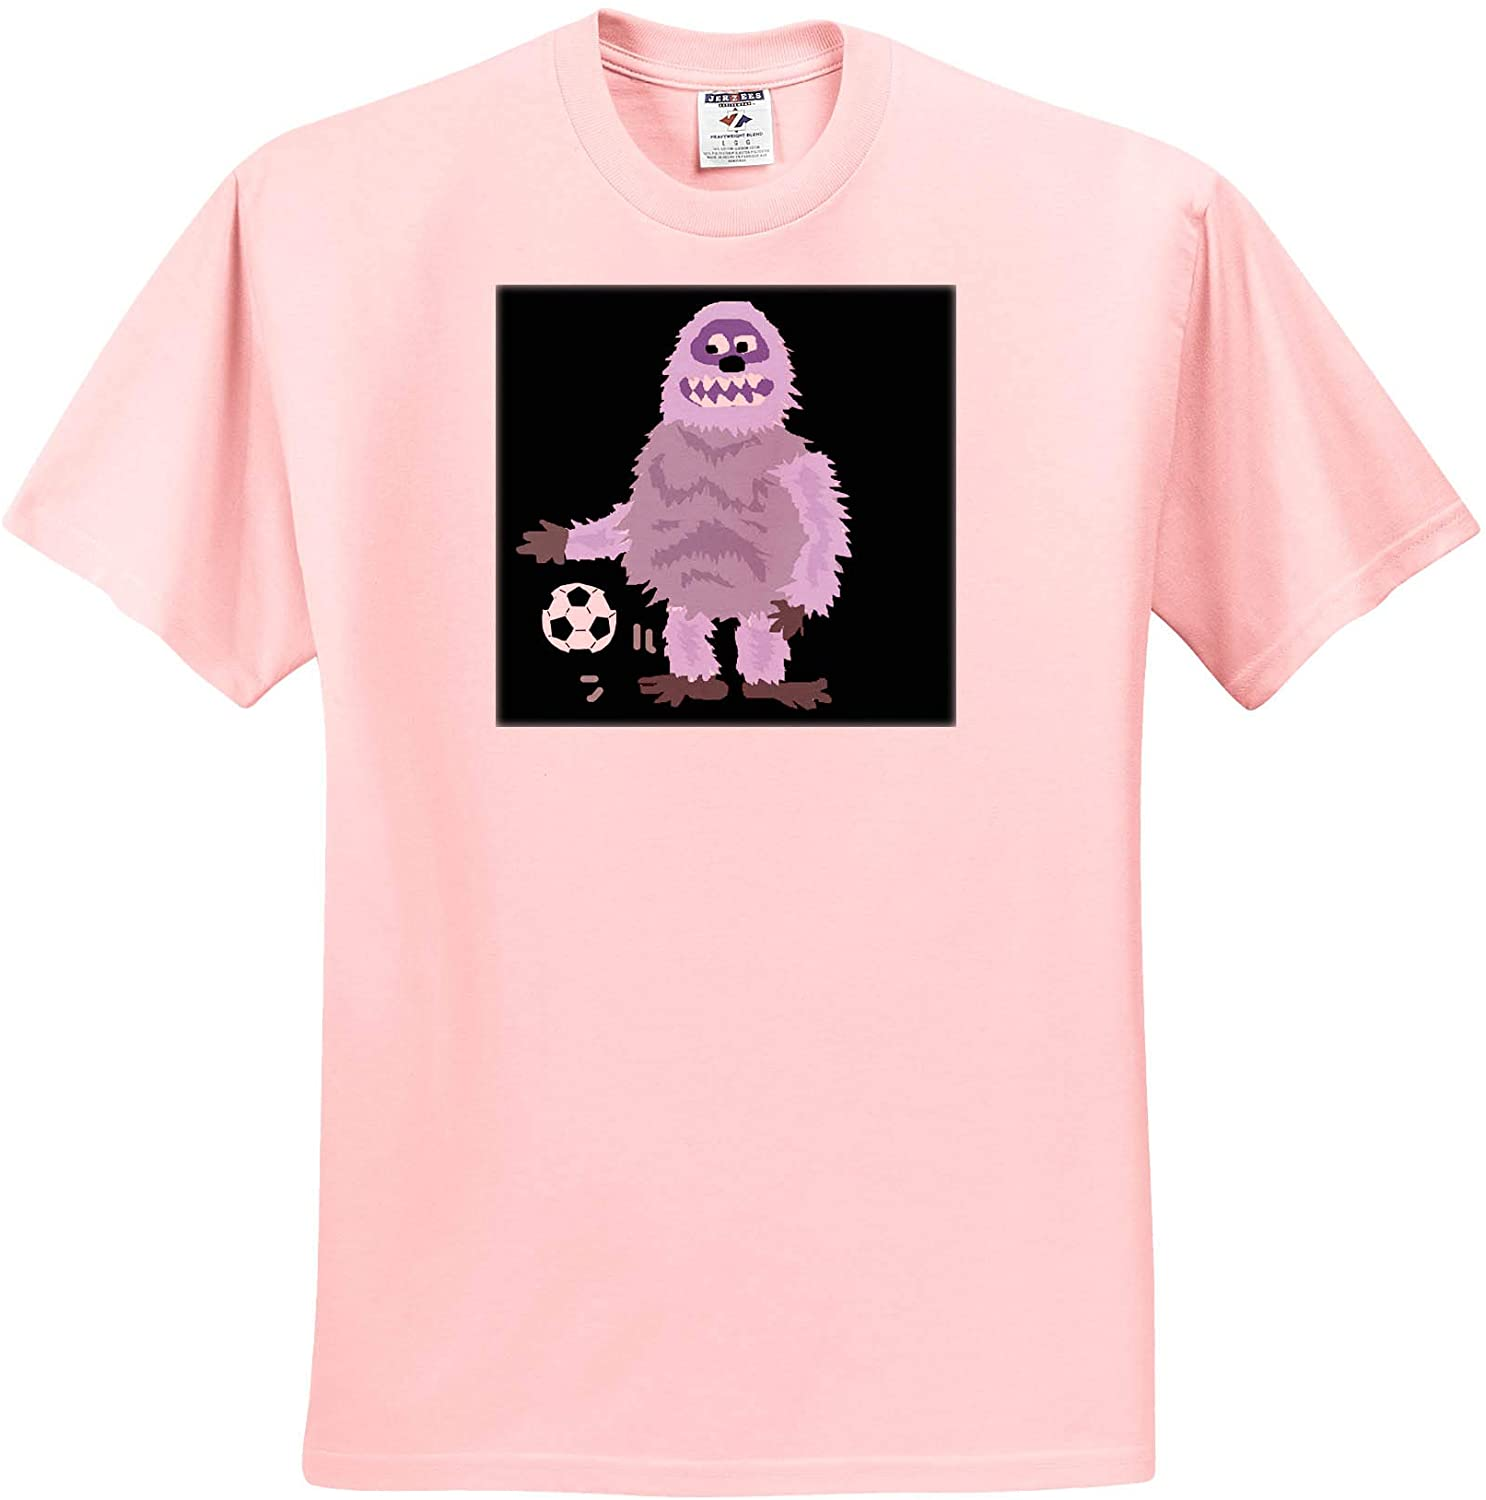 3dRose All Smiles Art - Sports and Hobbies - Funny Cute Abominable Snowman Playing Soccer Sports Cartoon - Youth Light-Pink-T-Shirt Small(6-8) (ts_328999_44)